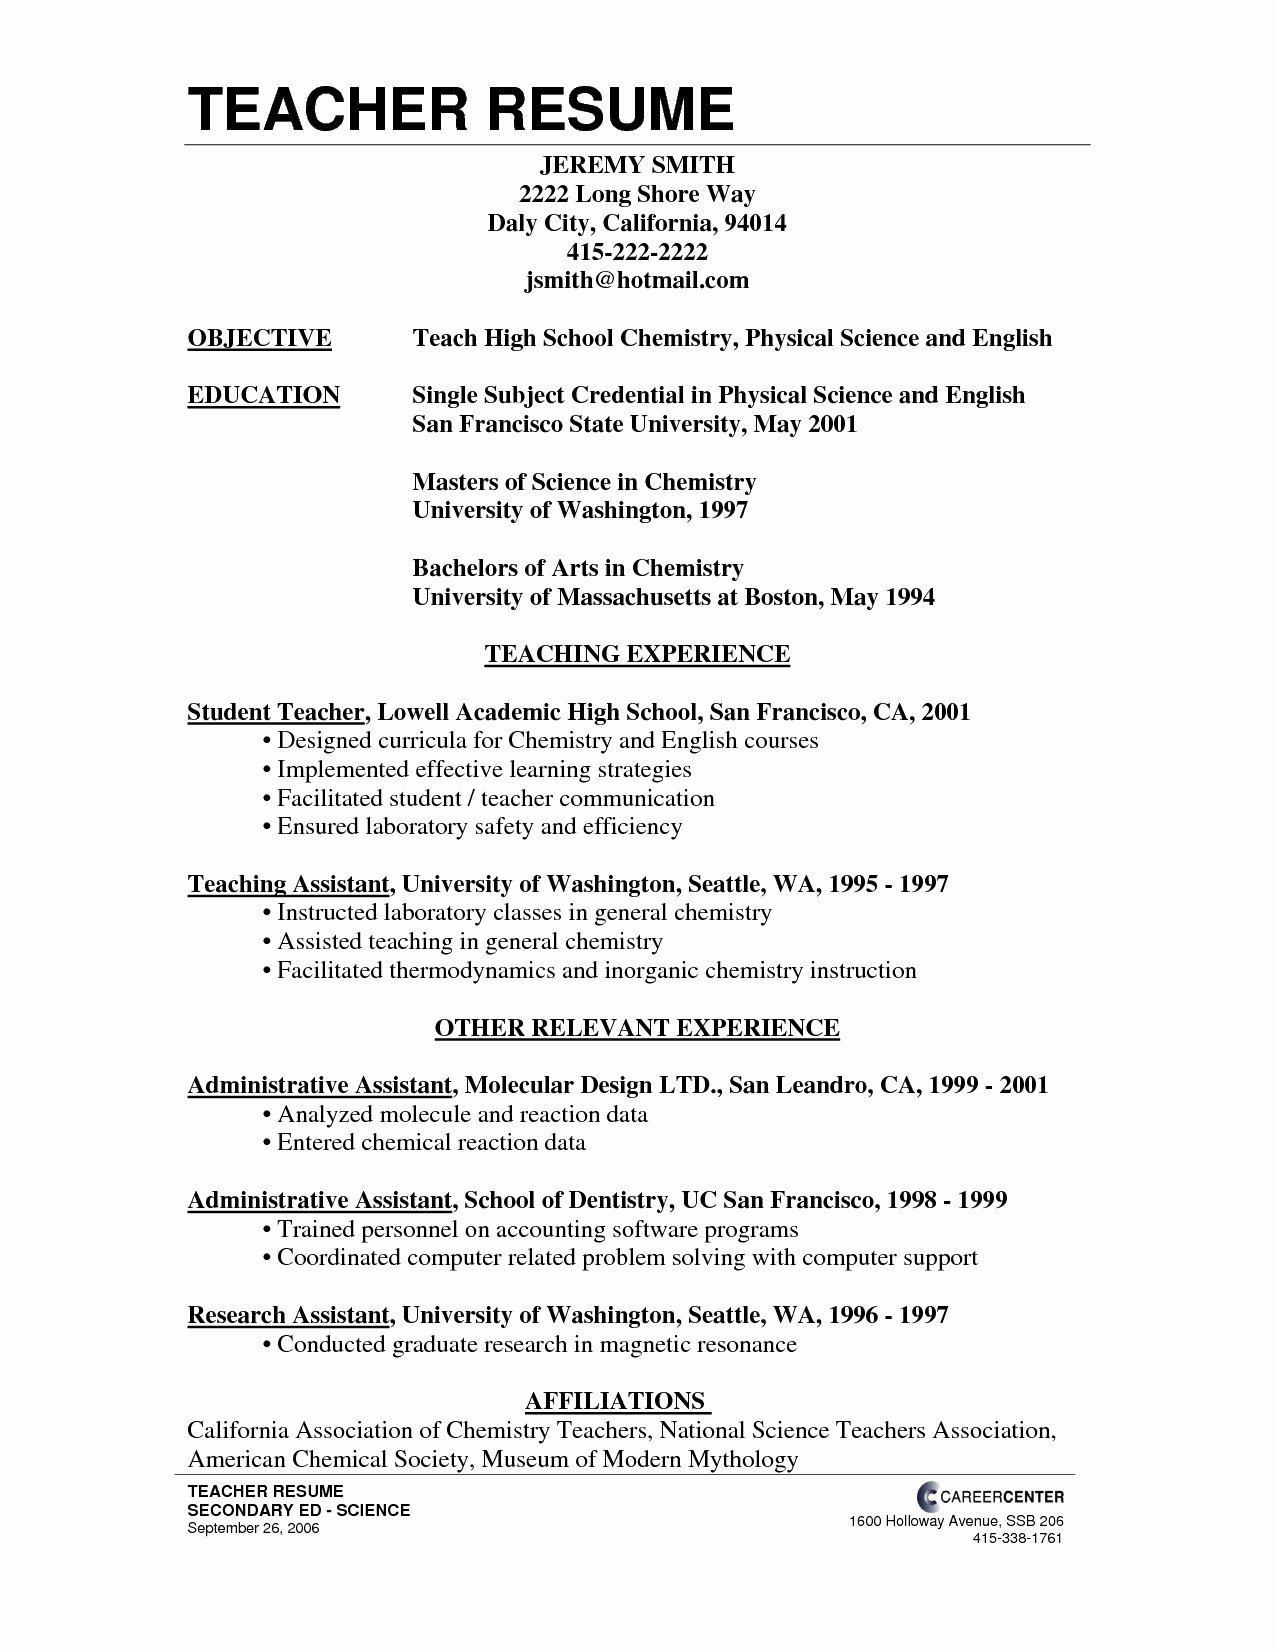 Cover Letter Template for Teachers Aide - Resume Cover Letter Example New Free Cover Letter Templates Examples